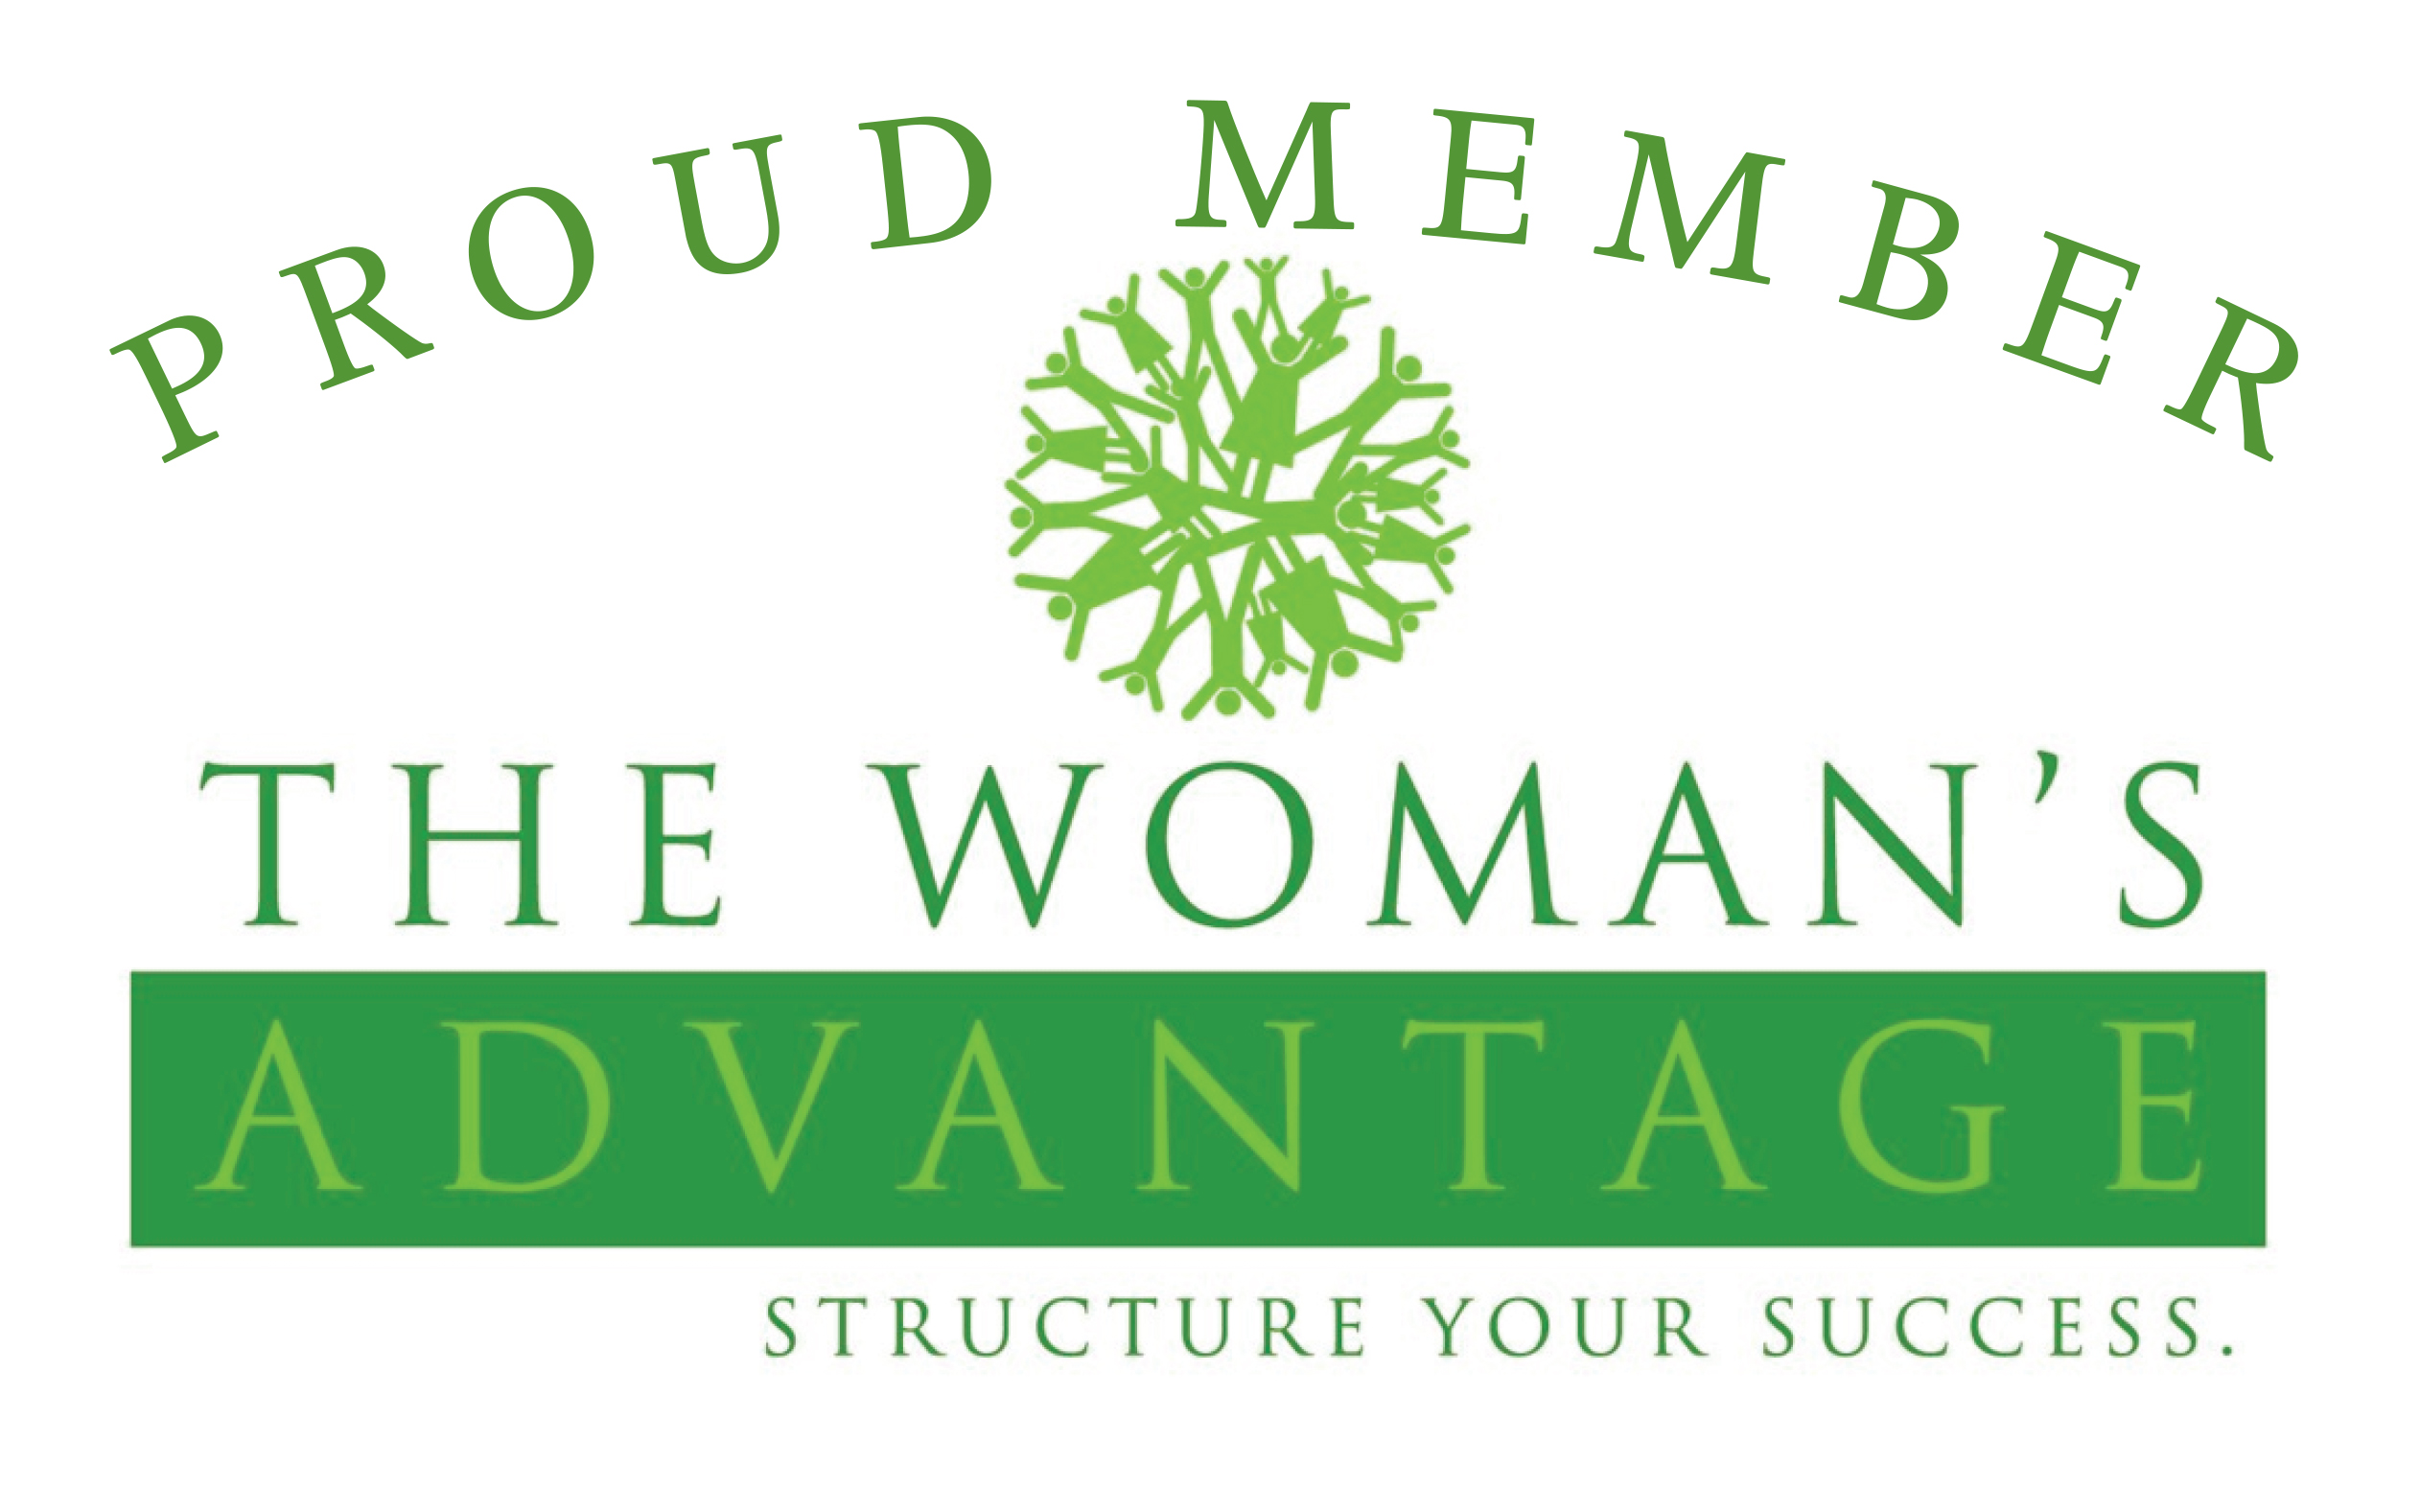 Myra Ray, Womans Advanatge Member, Inetrnet Marketing Expert